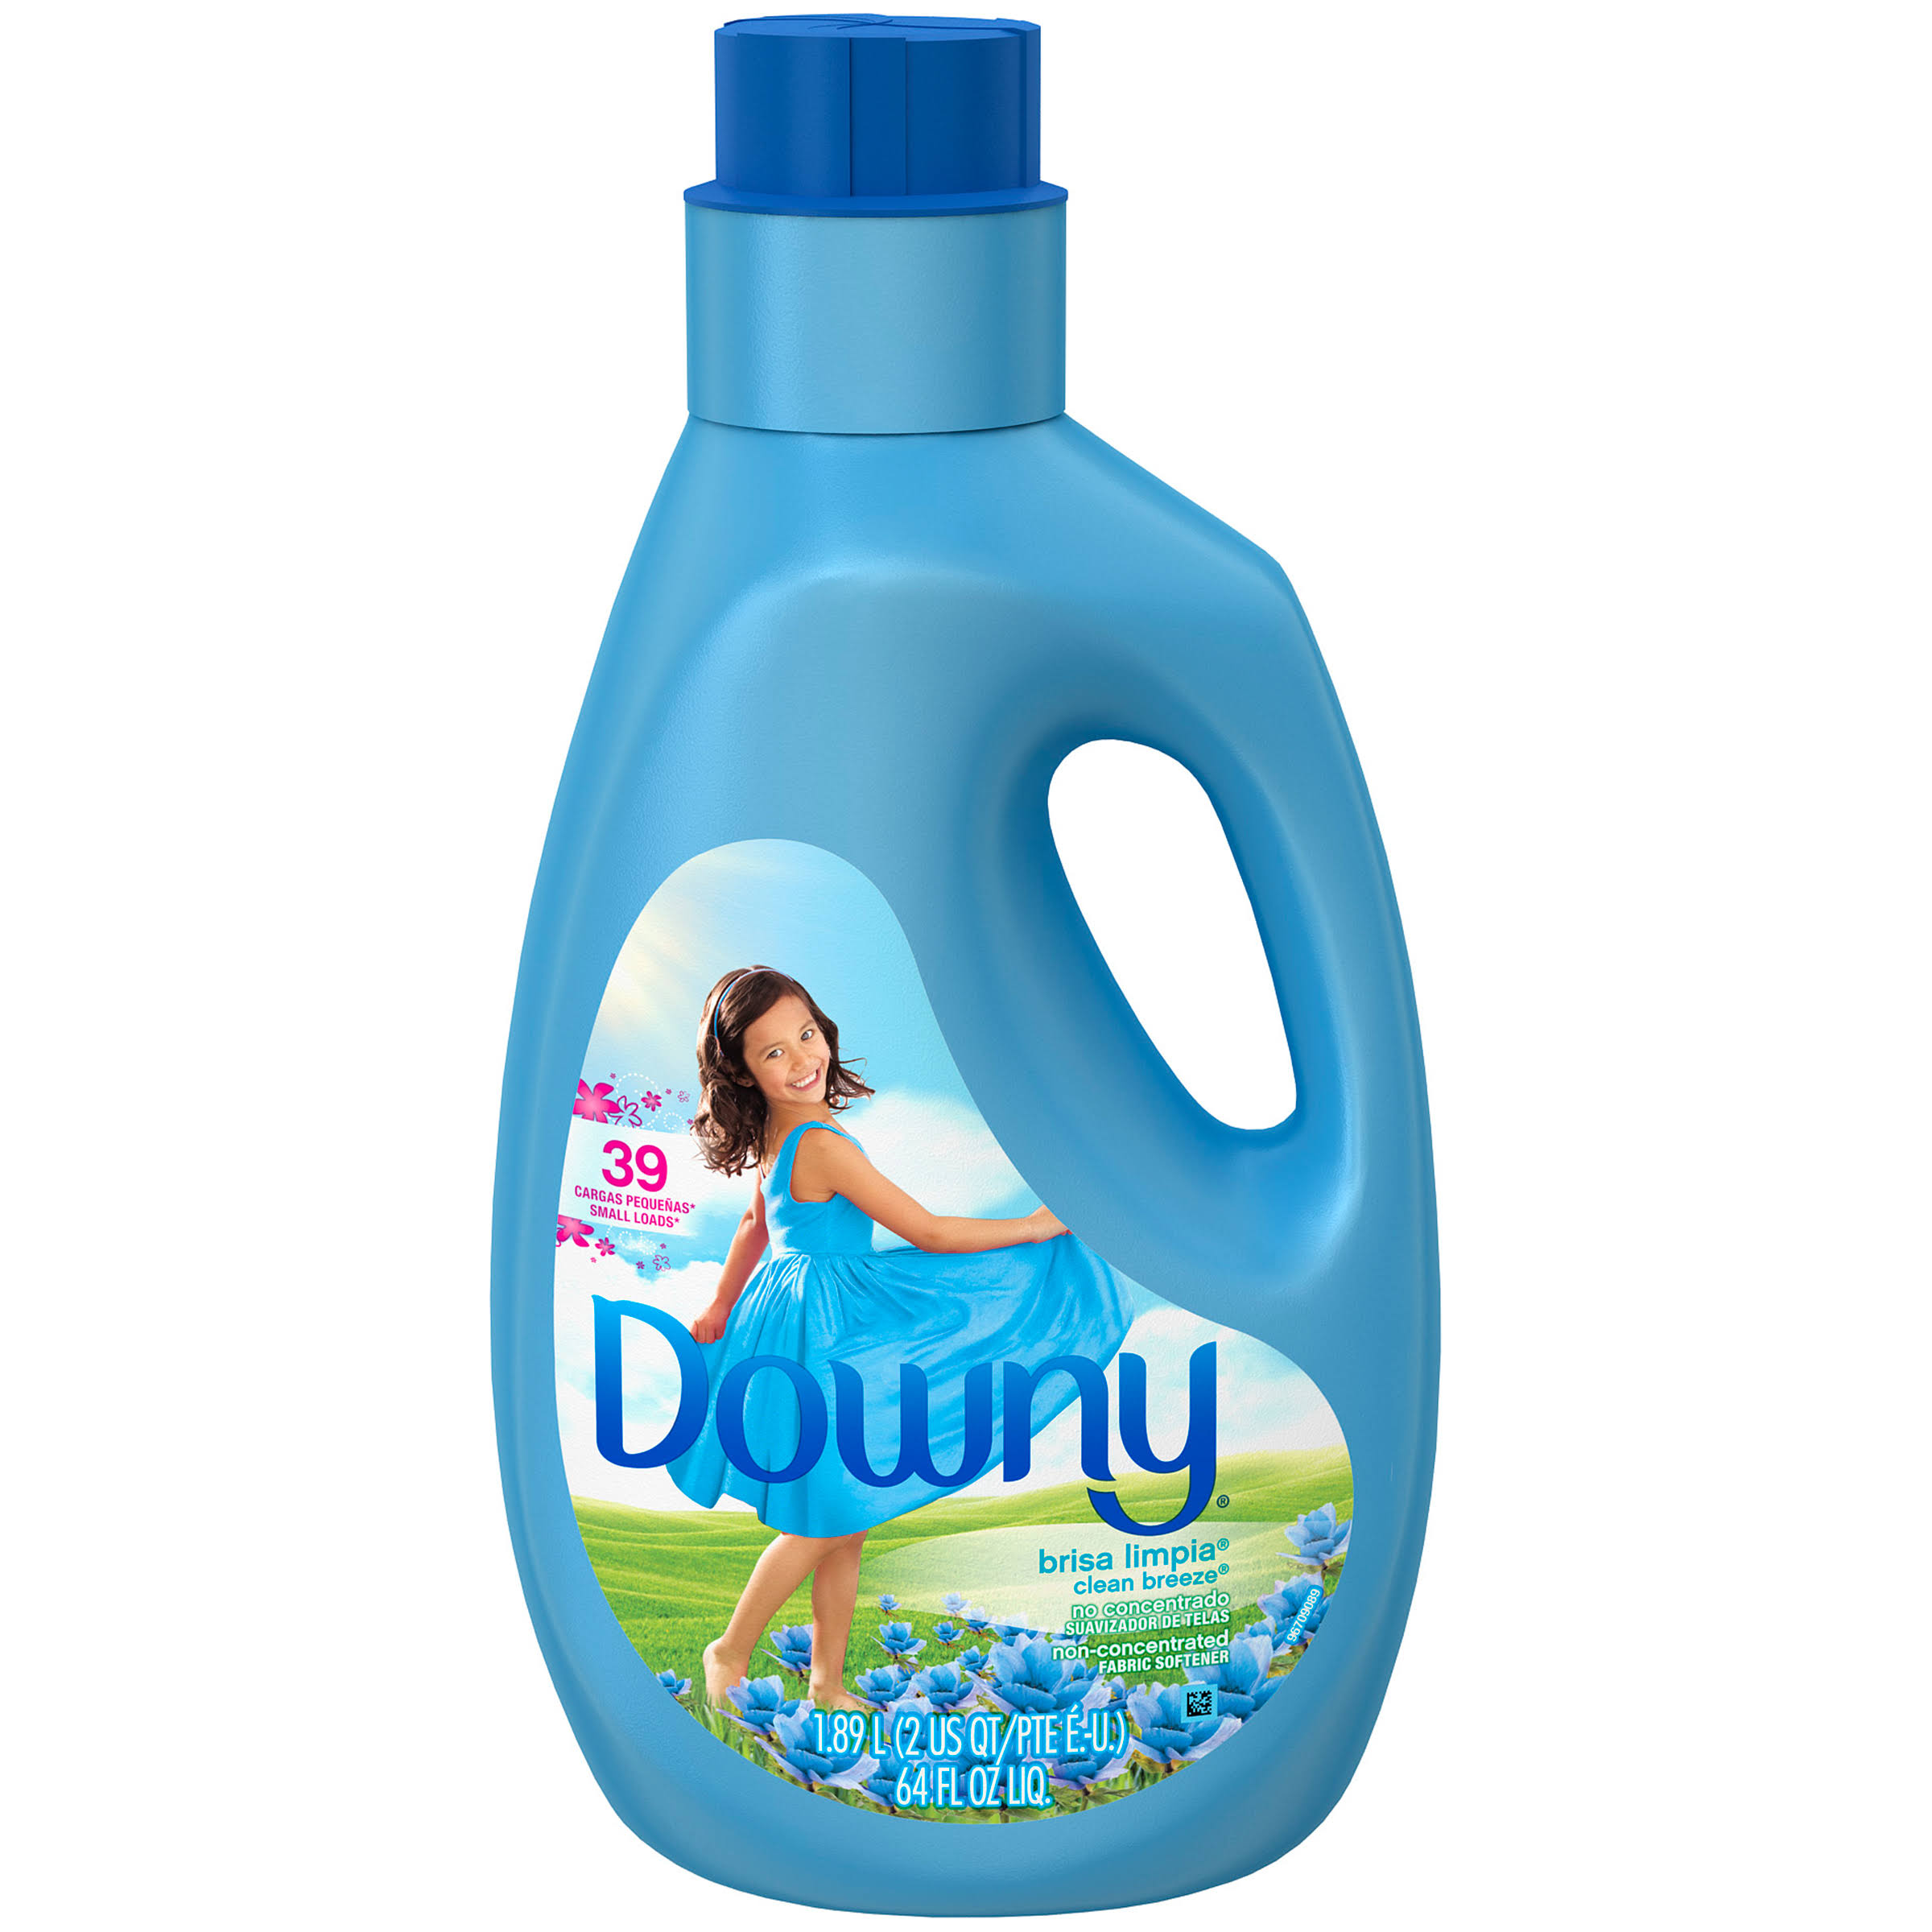 Downy Fabric Softener - Clean Breeze, 64oz